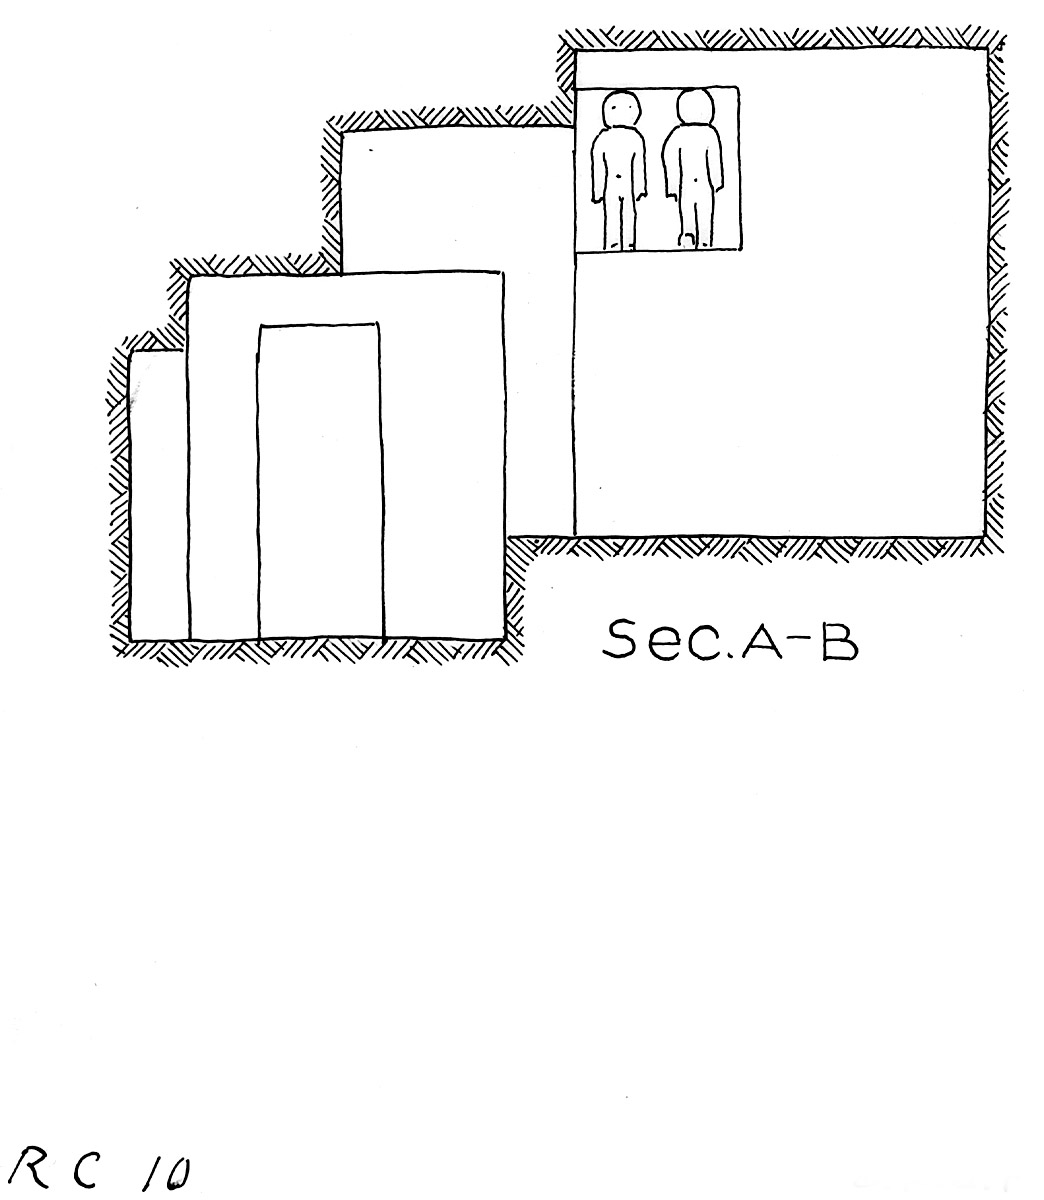 Maps and plans: Service tomb 10, Section with niche statues